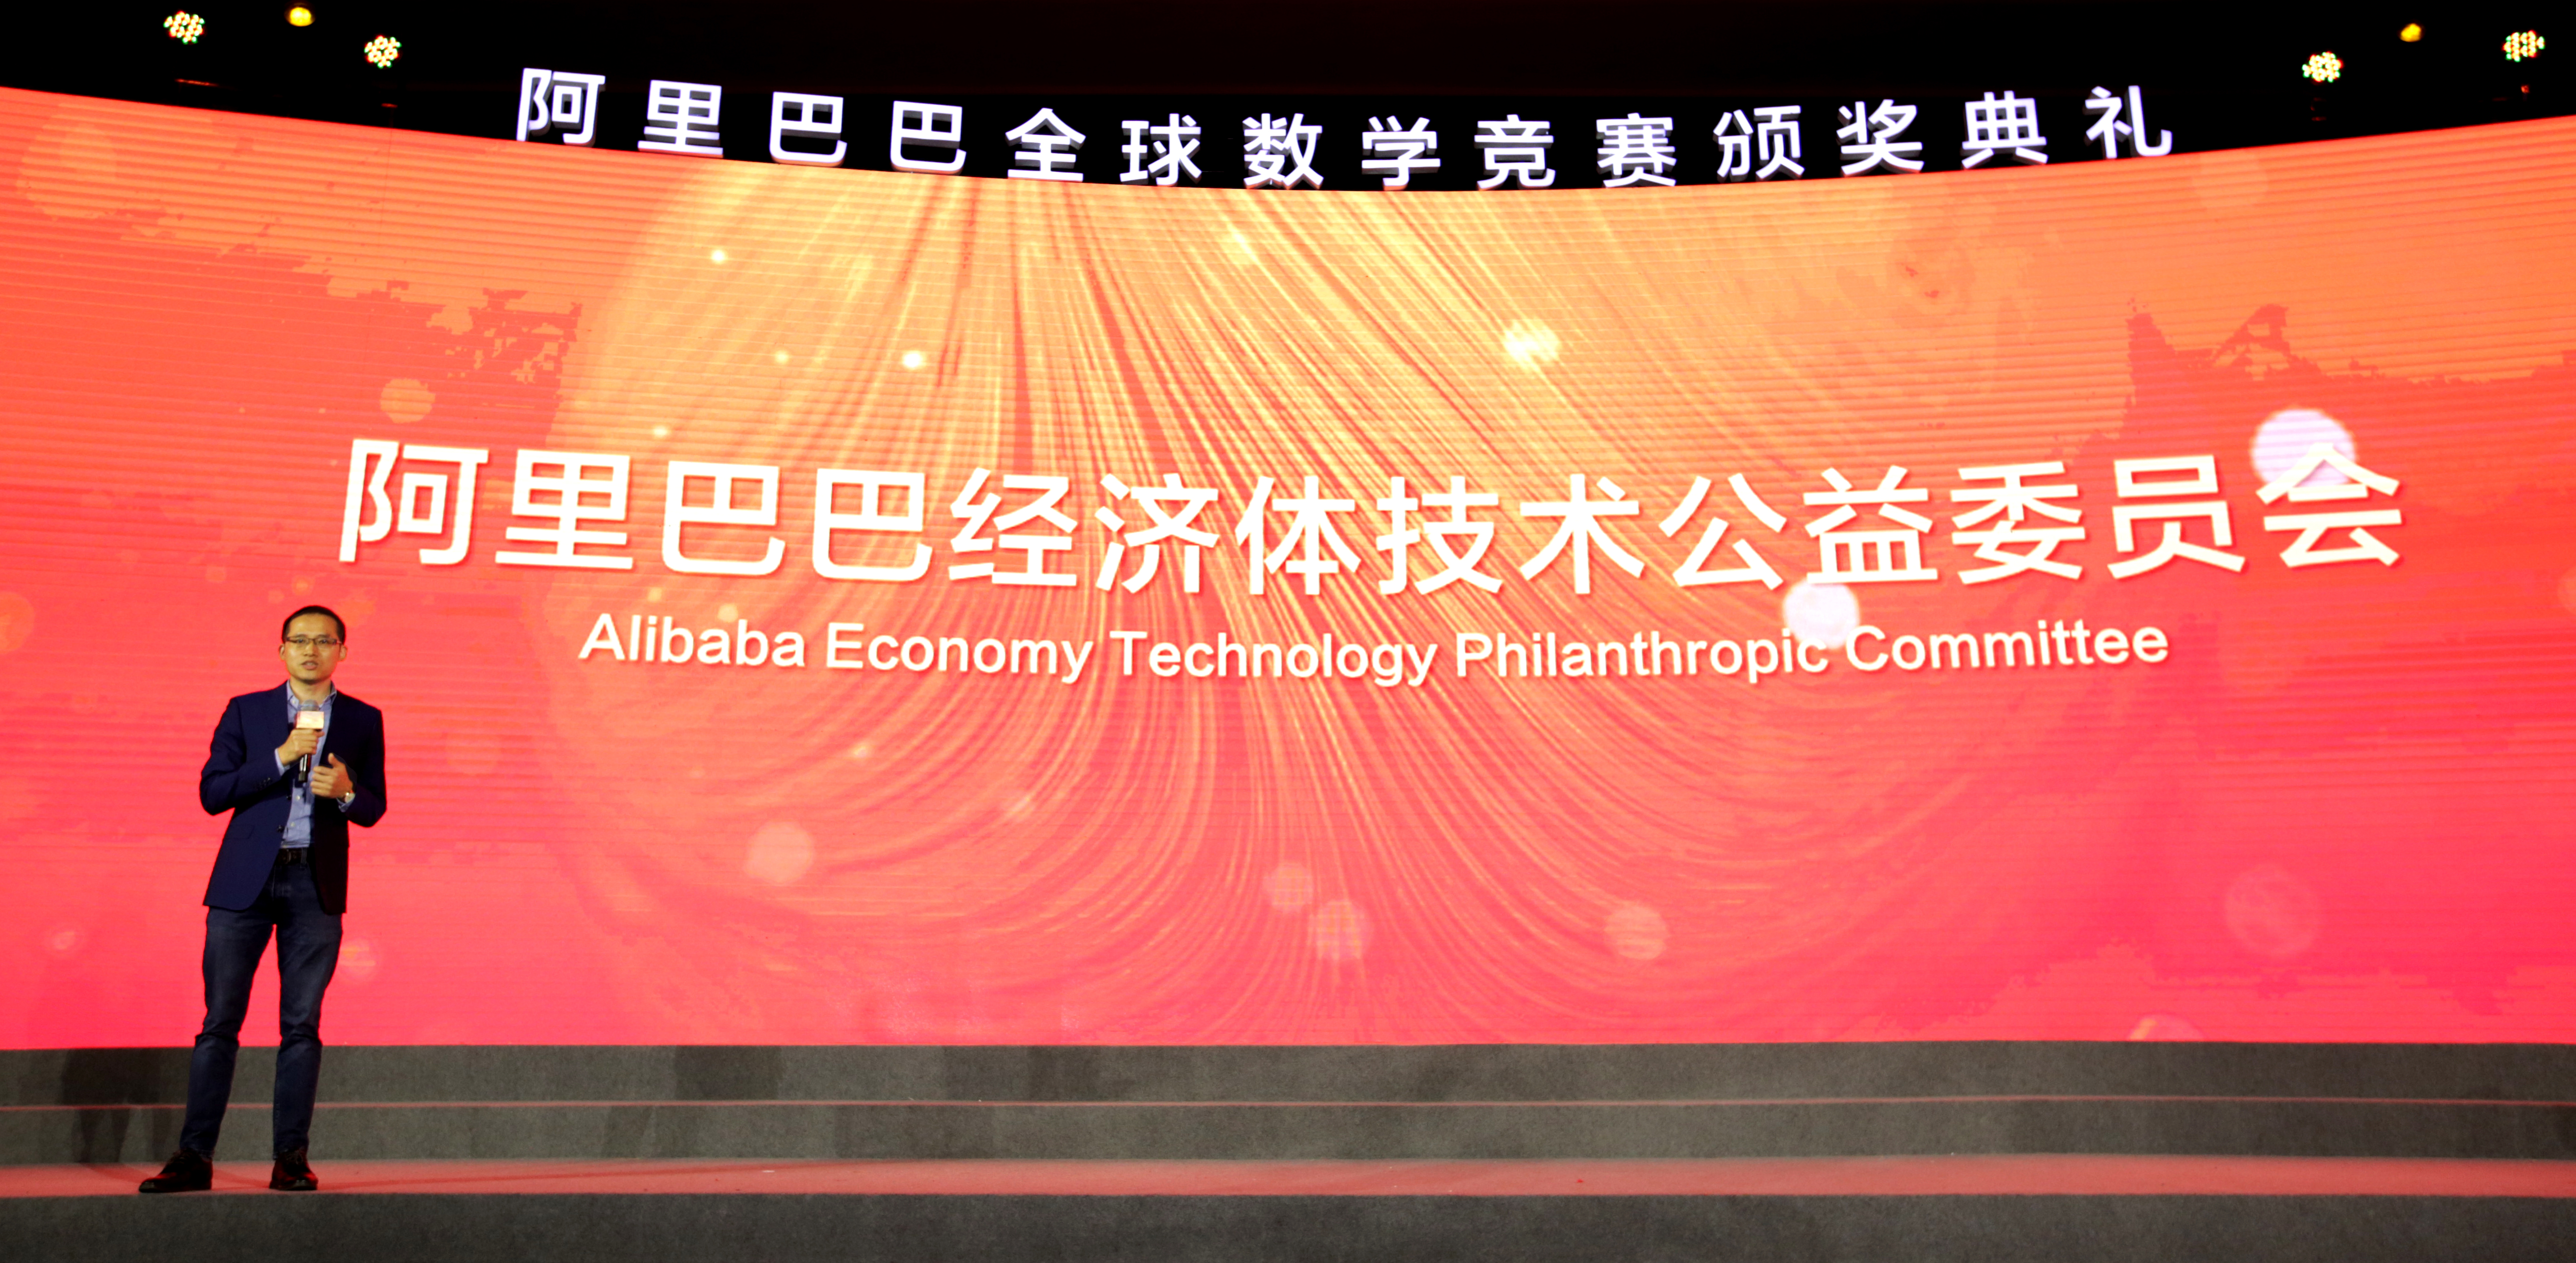 Alibaba CTO Jeff Zhang announces launch of new technology philanthropic committee_03292019